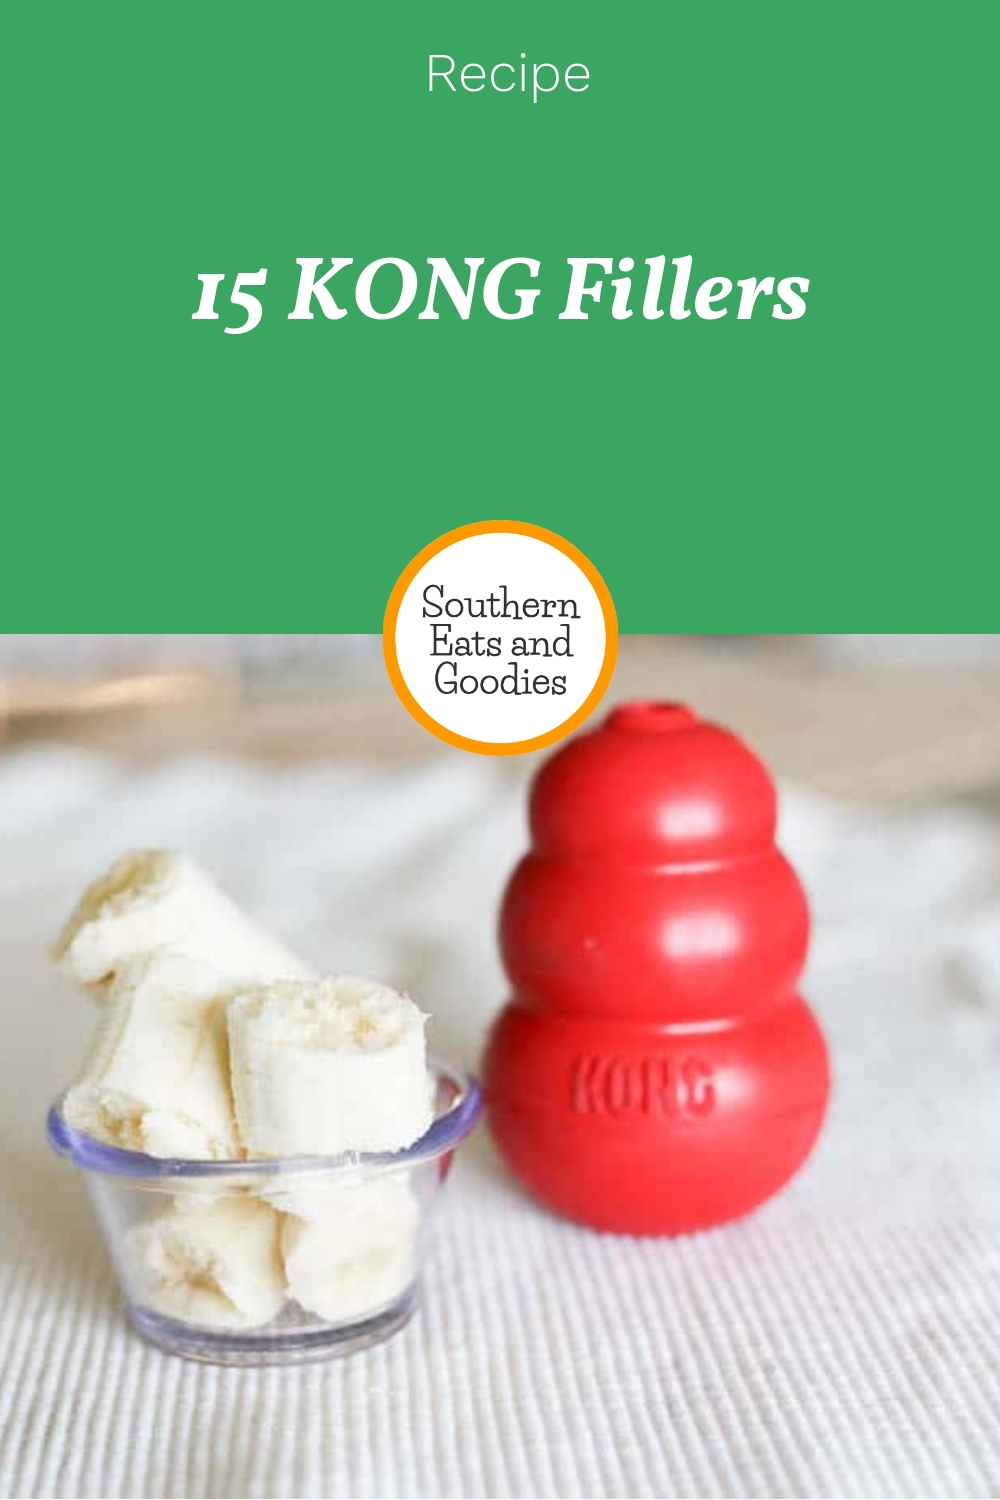 15 KONG Fillers